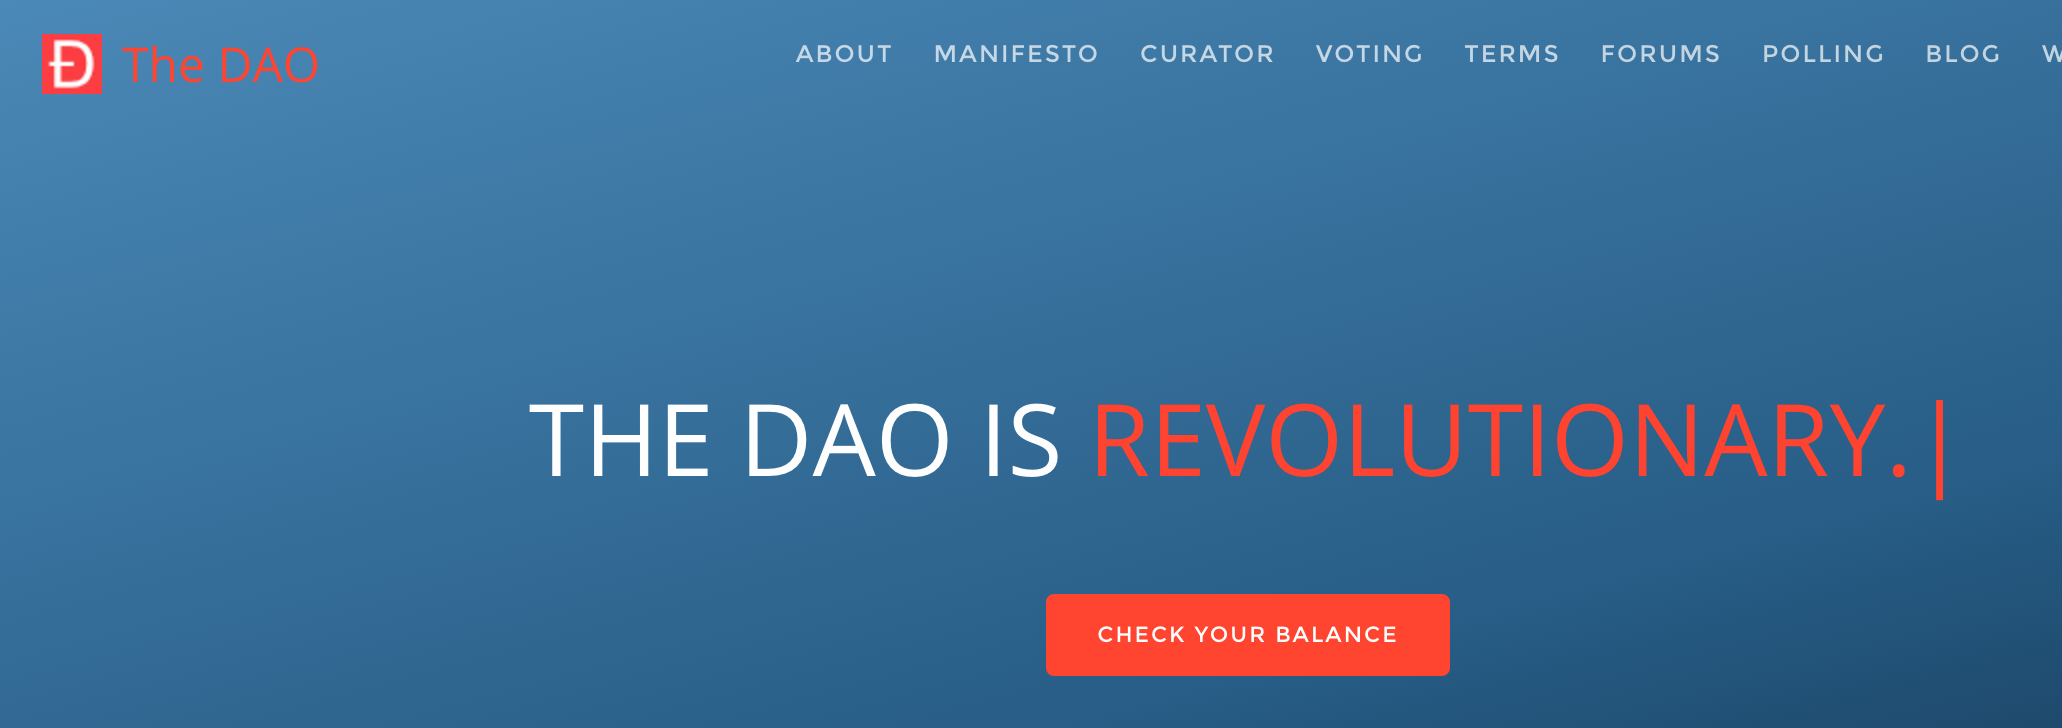 Screenshot of daohub.org